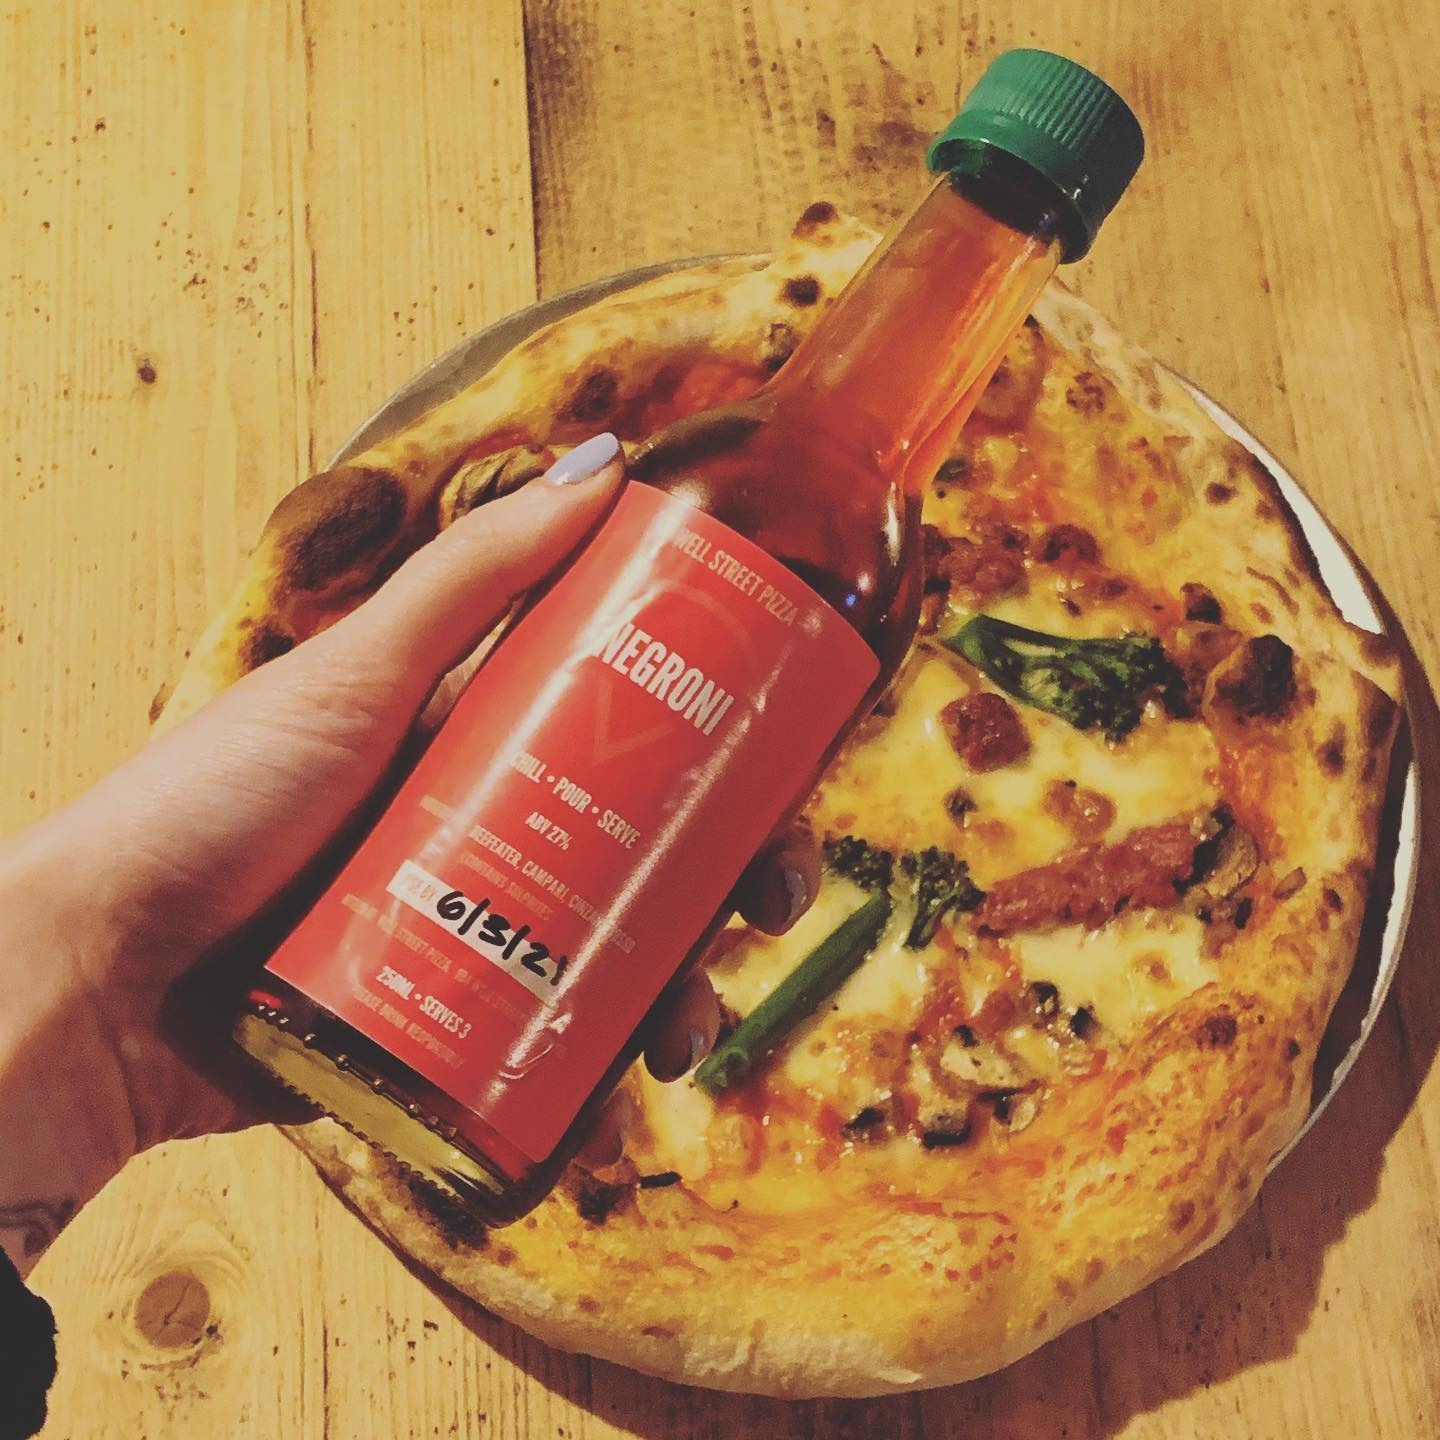 TGIF East London! Looking for pizza and cocktails? We got you.  . . . #youwantapizzame #pizza #hackney #cocktails #delivery #tgif #fridayvibes #london